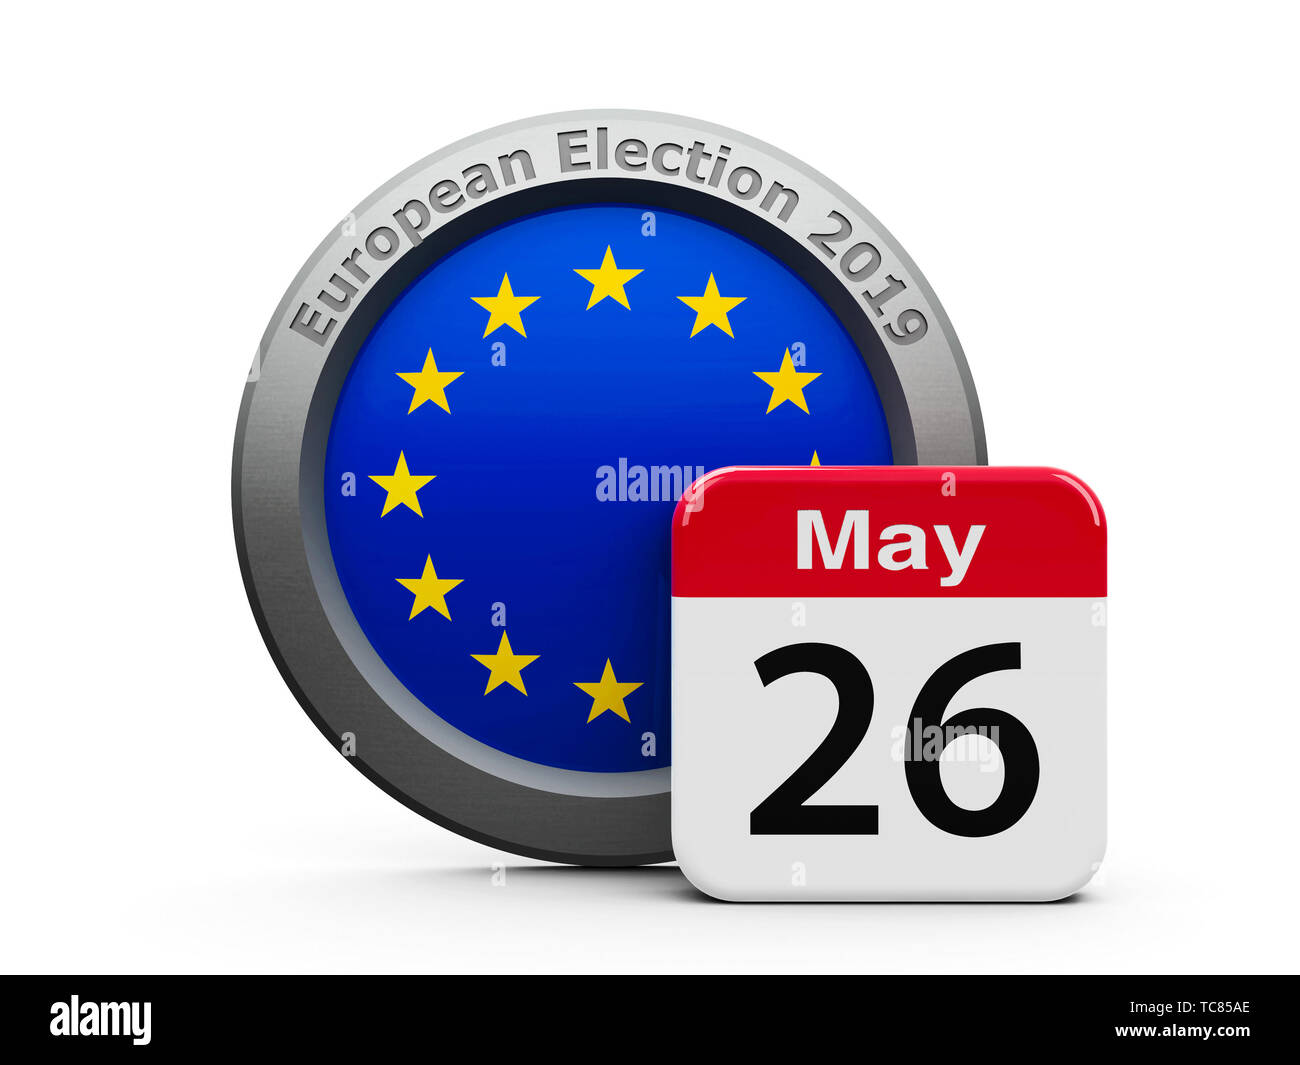 Emblem of European Union with calendar button - The Twenty Sixth of May - represents the European Parliament election 2019, three-dimensional renderin - Stock Image